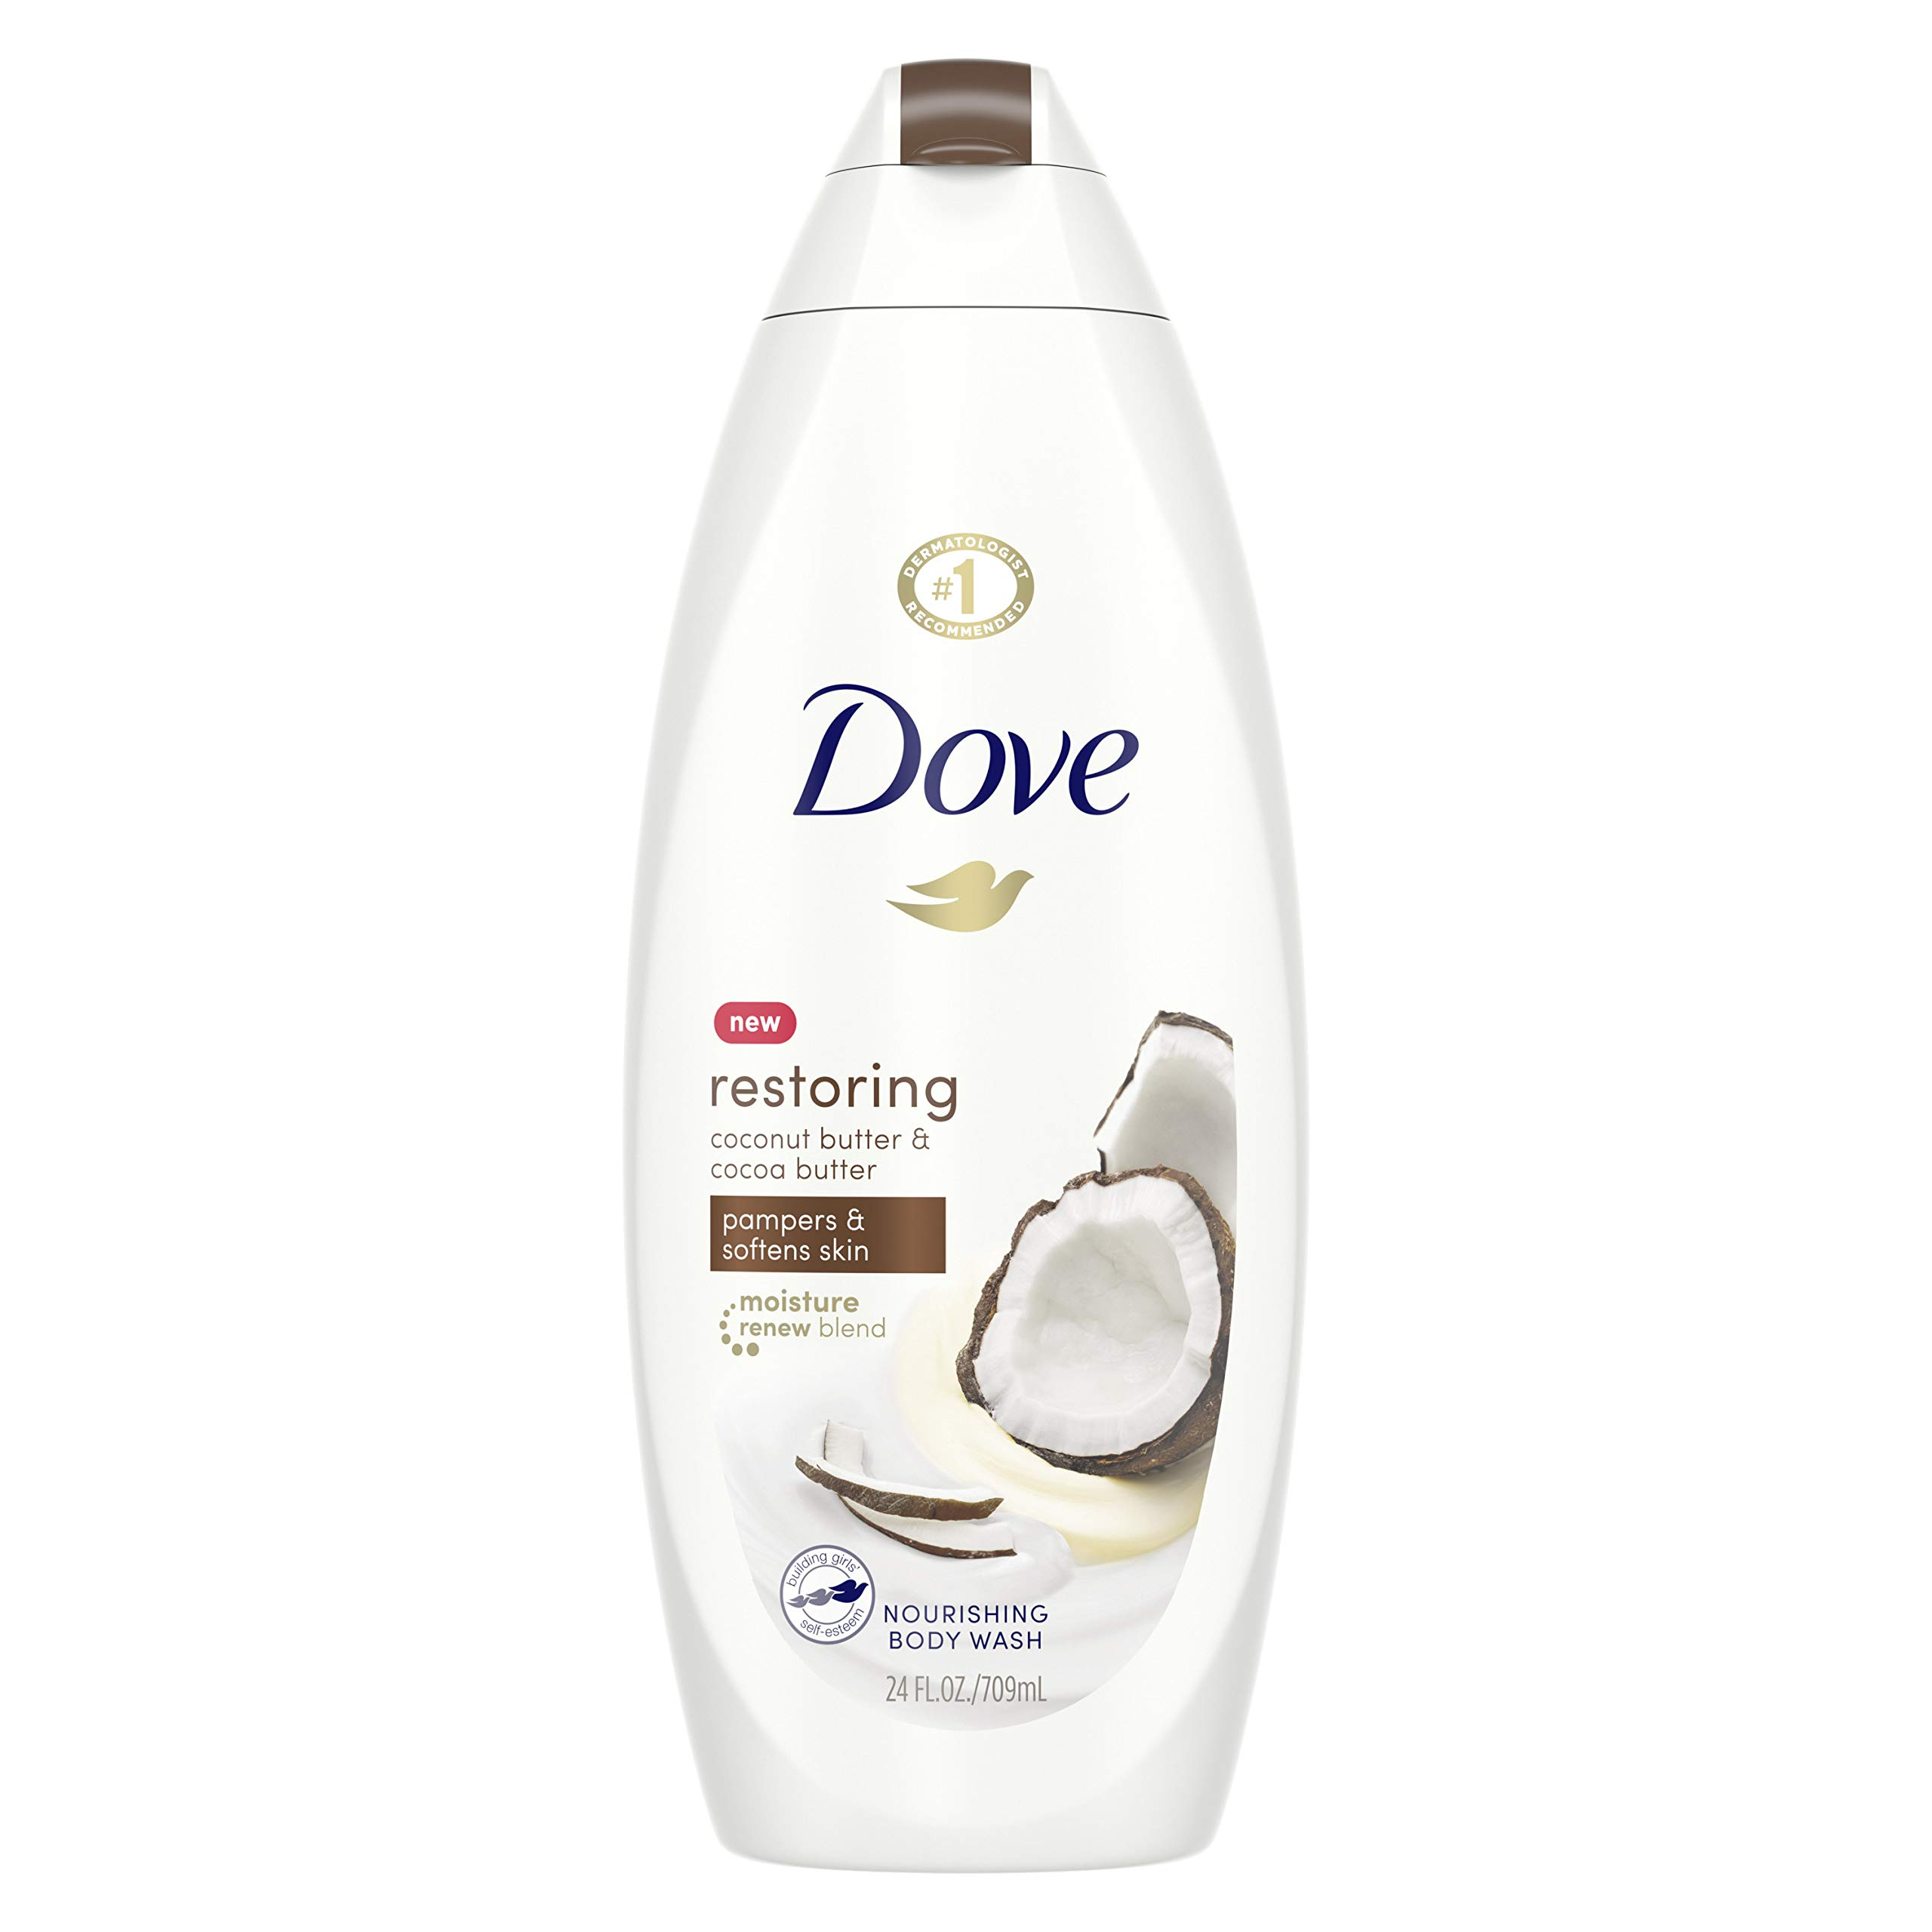 Dove Purely Pampering Body Wash 100%,Gentle Cleansers, Sulfate Free Coconut Butter and Cocoa Butter Gentle Cleansing Bodywash 22 oz